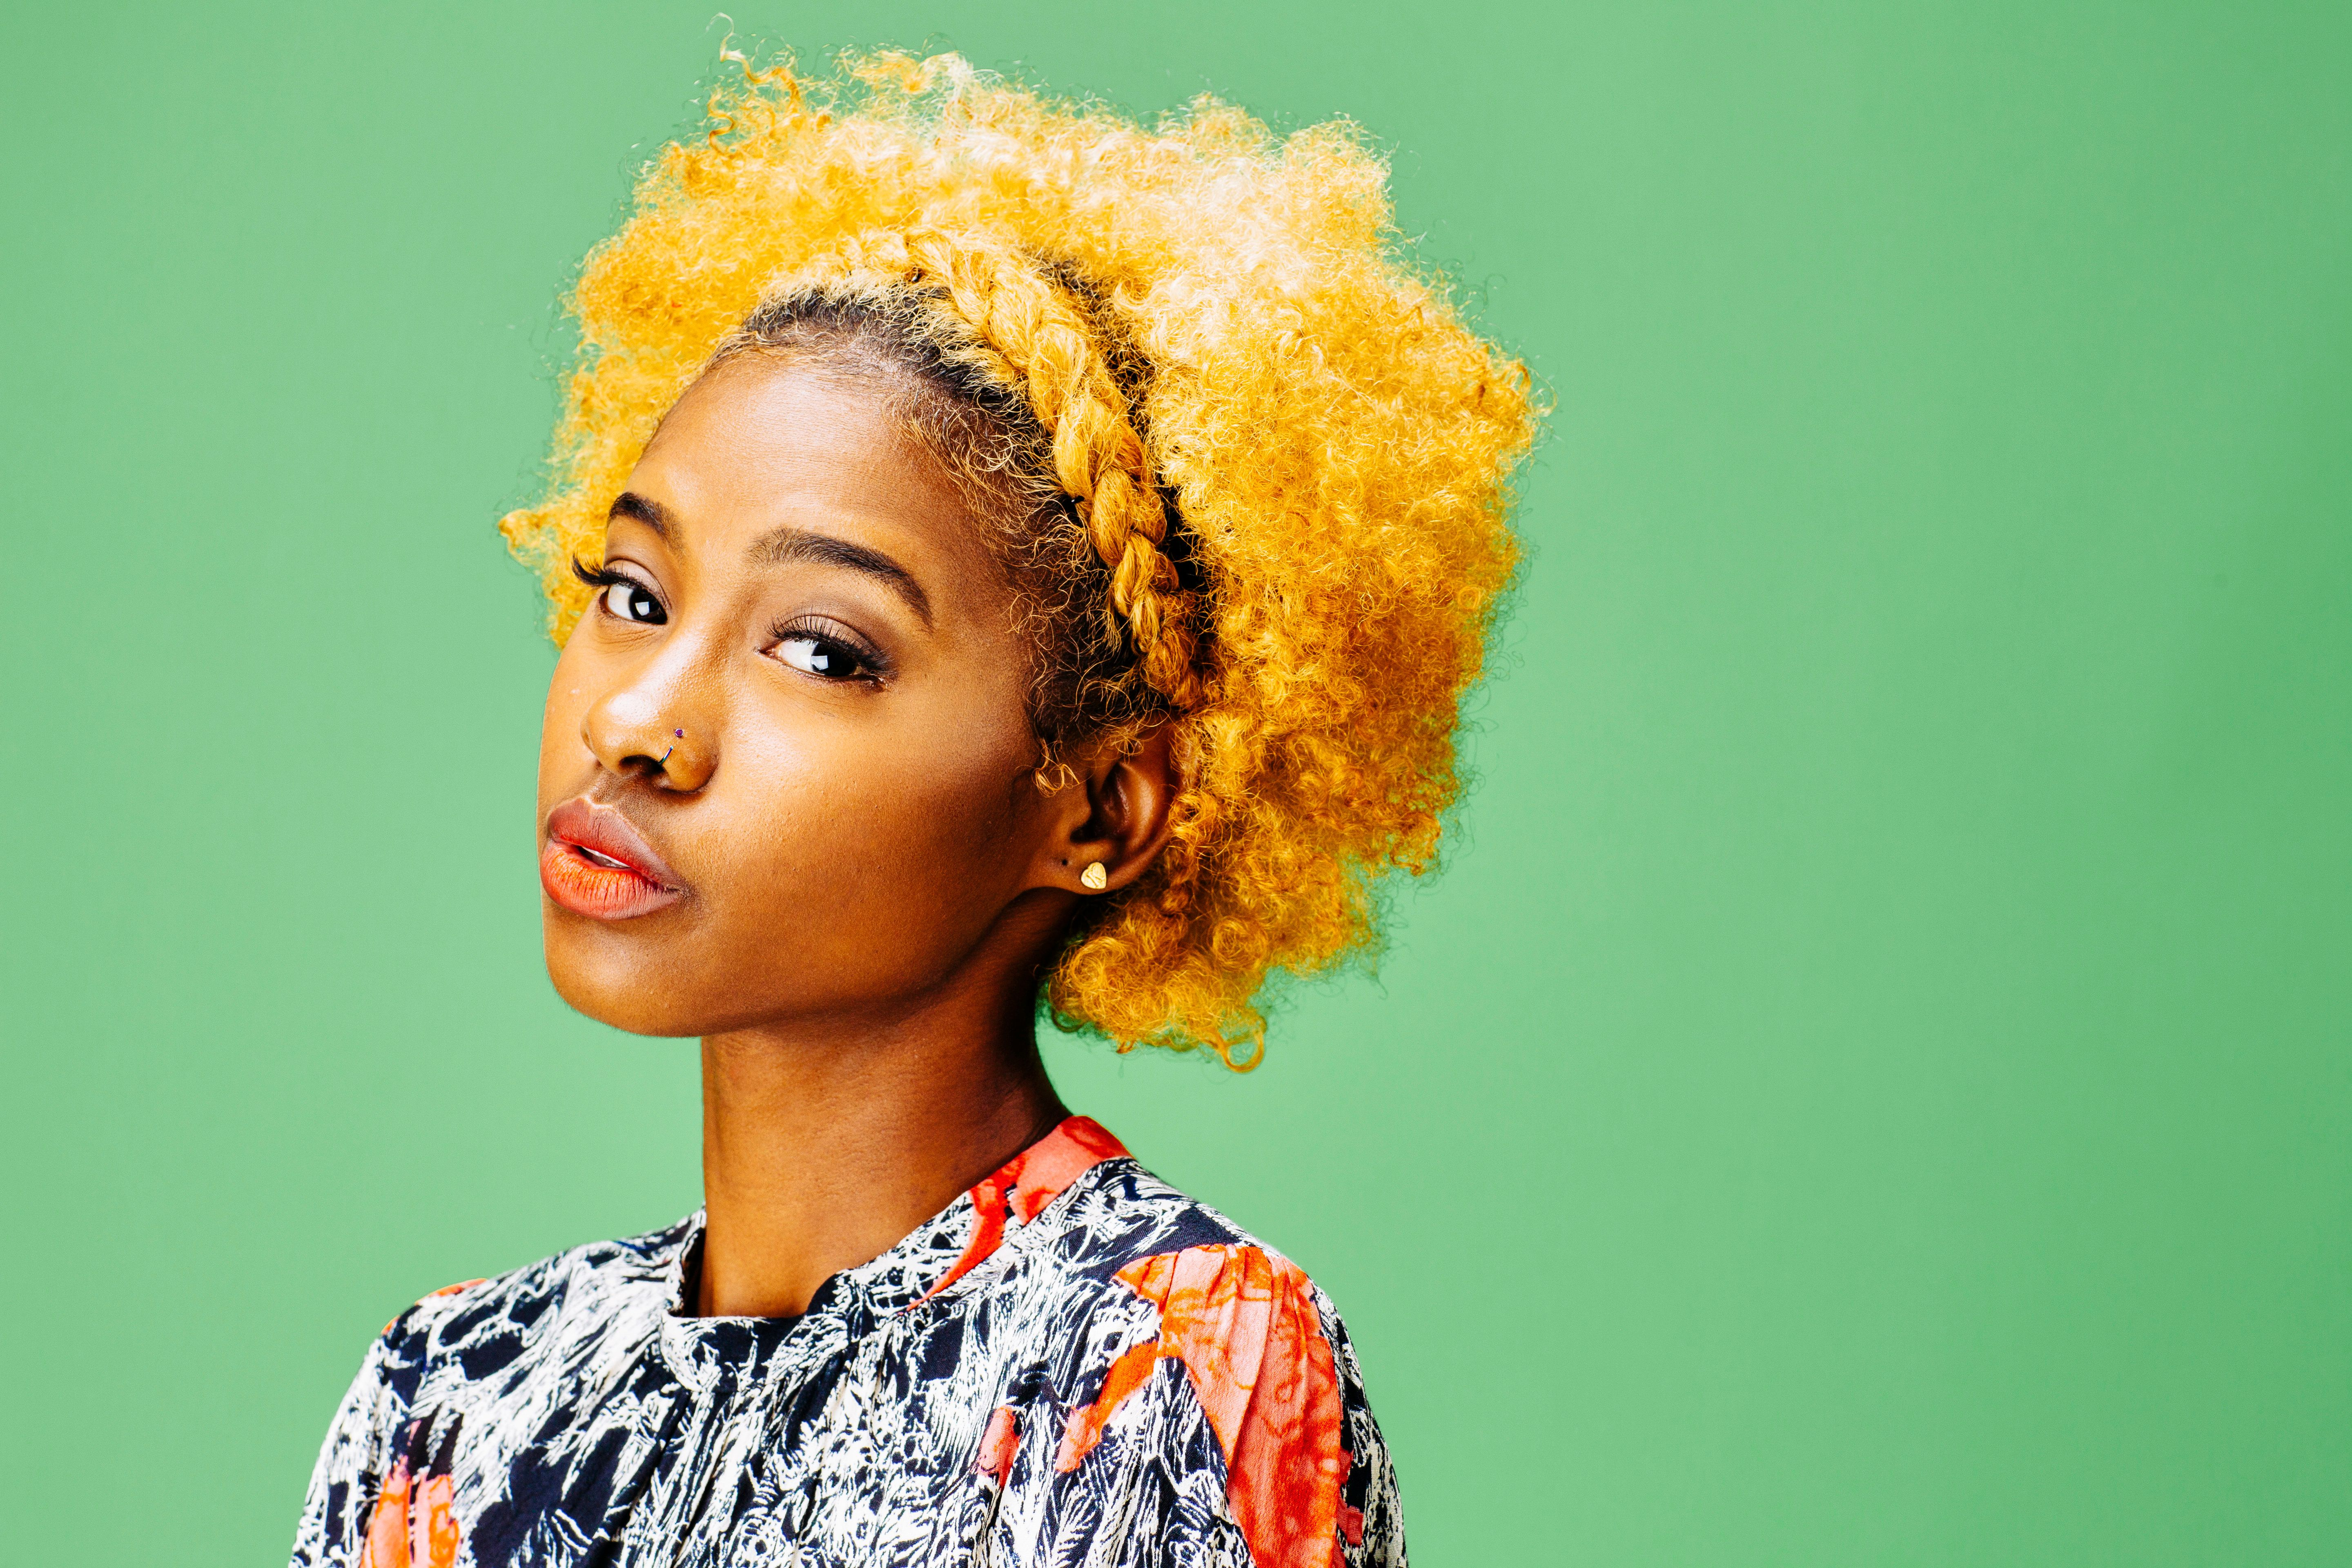 Horizontal portrait of a lovely young girl with bleached curly hair, in front of a green background